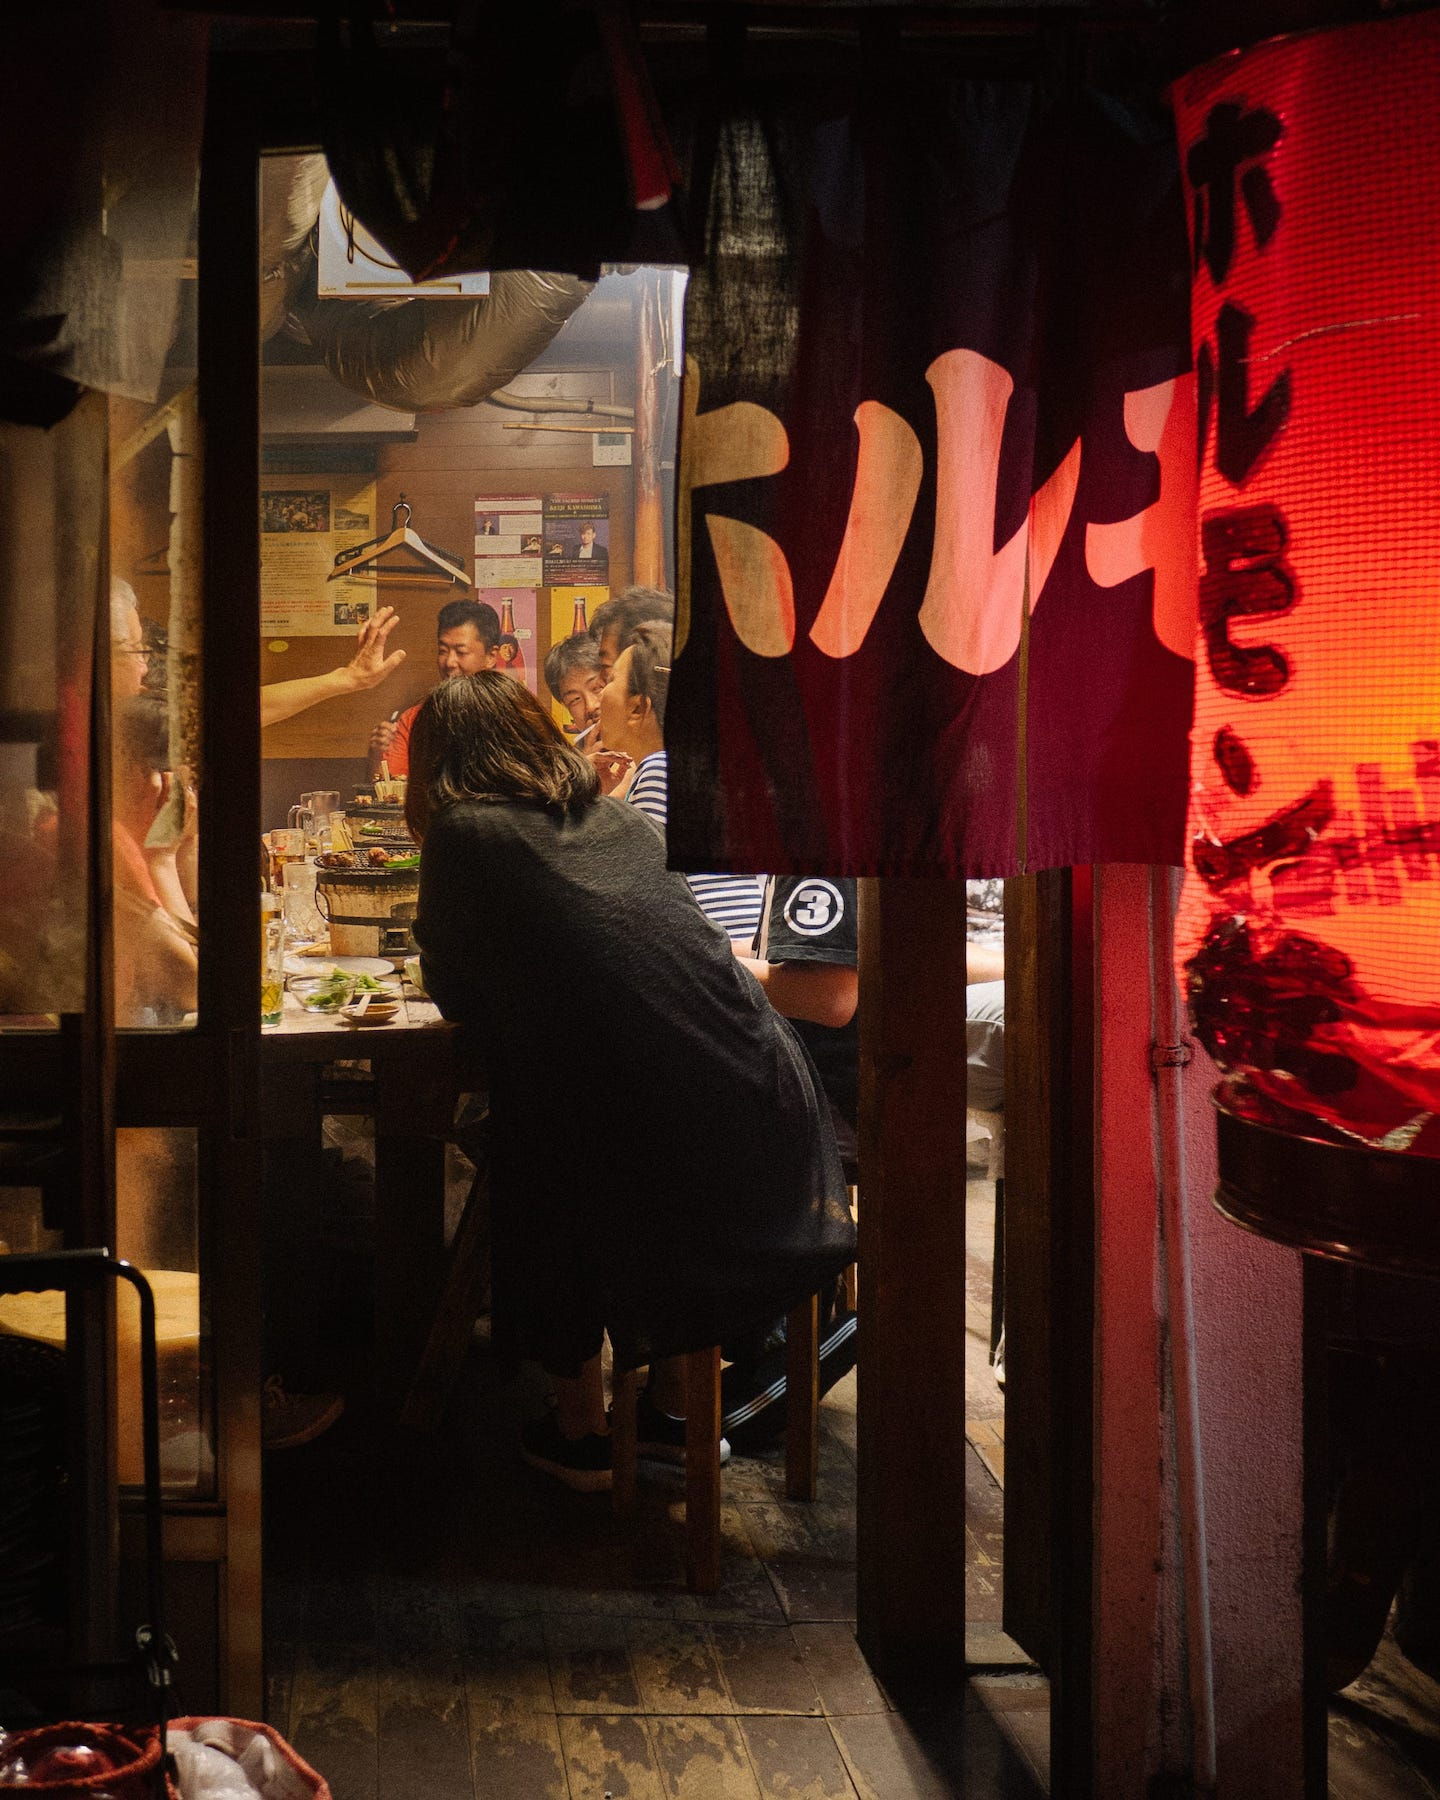 tokyo_nuit_anthony_marques_3